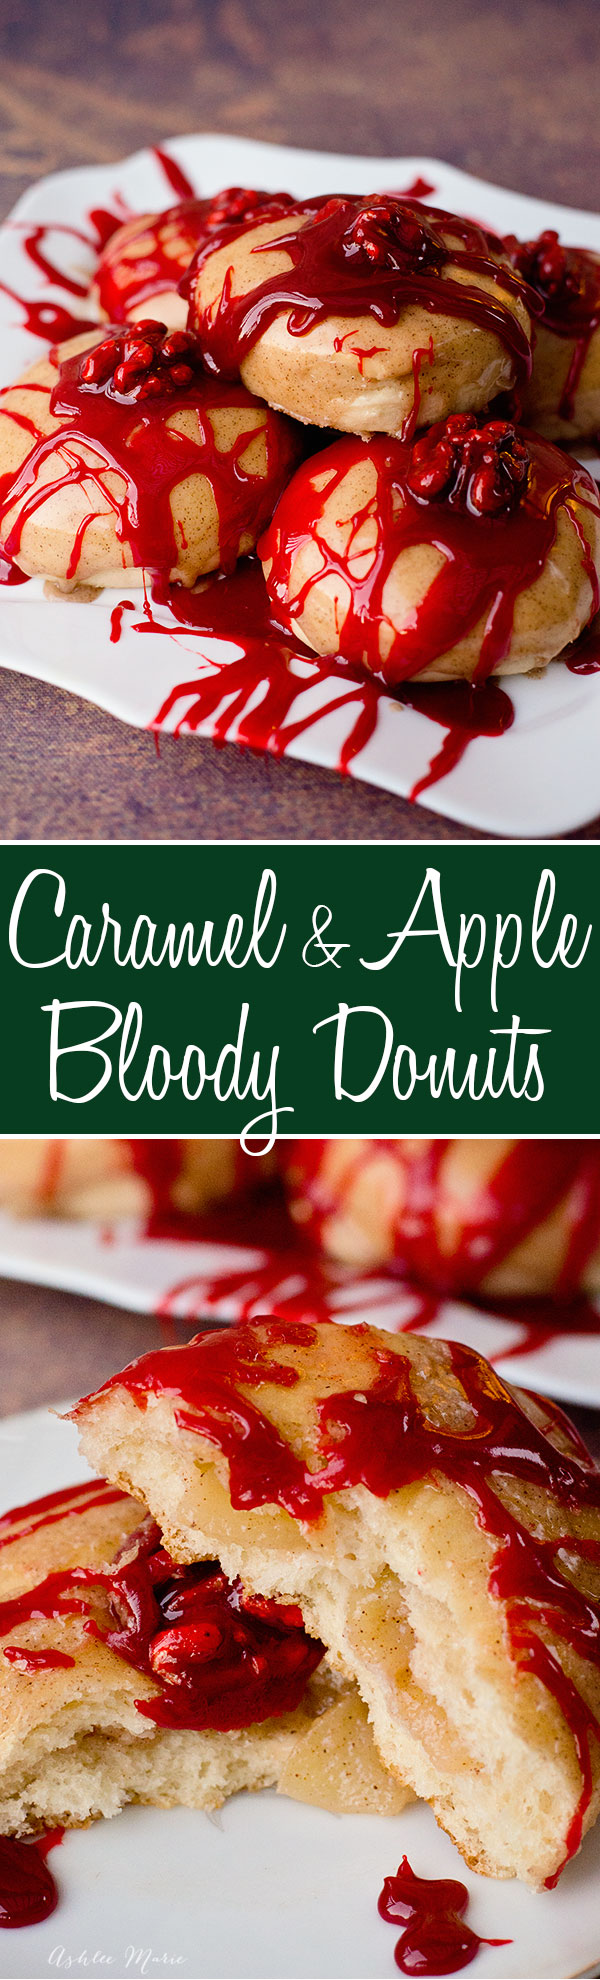 create your own bloody brain doughnuts for halloween with this full video tutorial and recipes. Toasted walnut brain, caramel sauce blood, over a delicious apple pie filled raised doughnut.